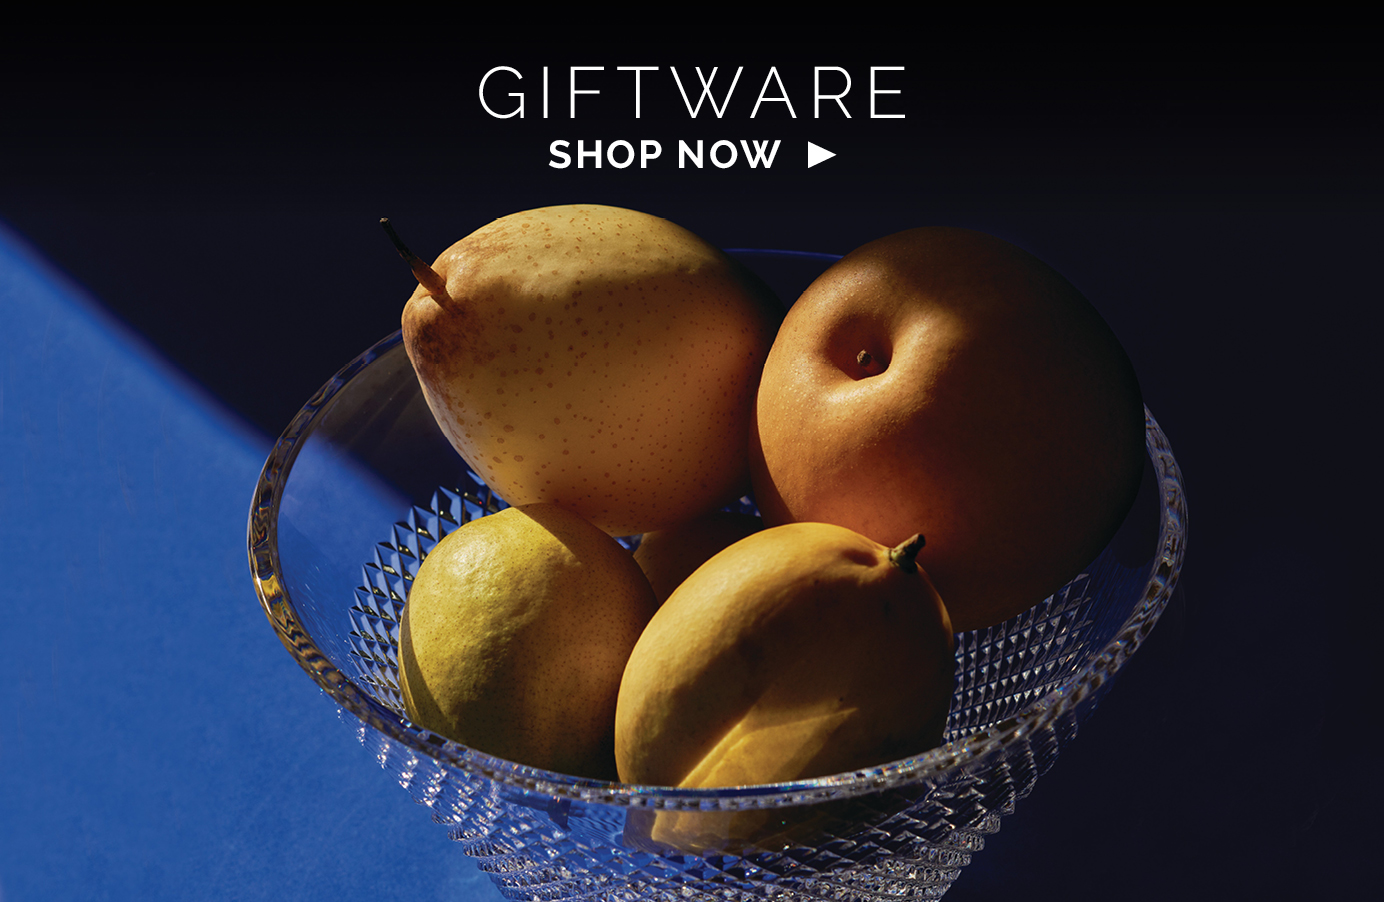 giftware bottom right